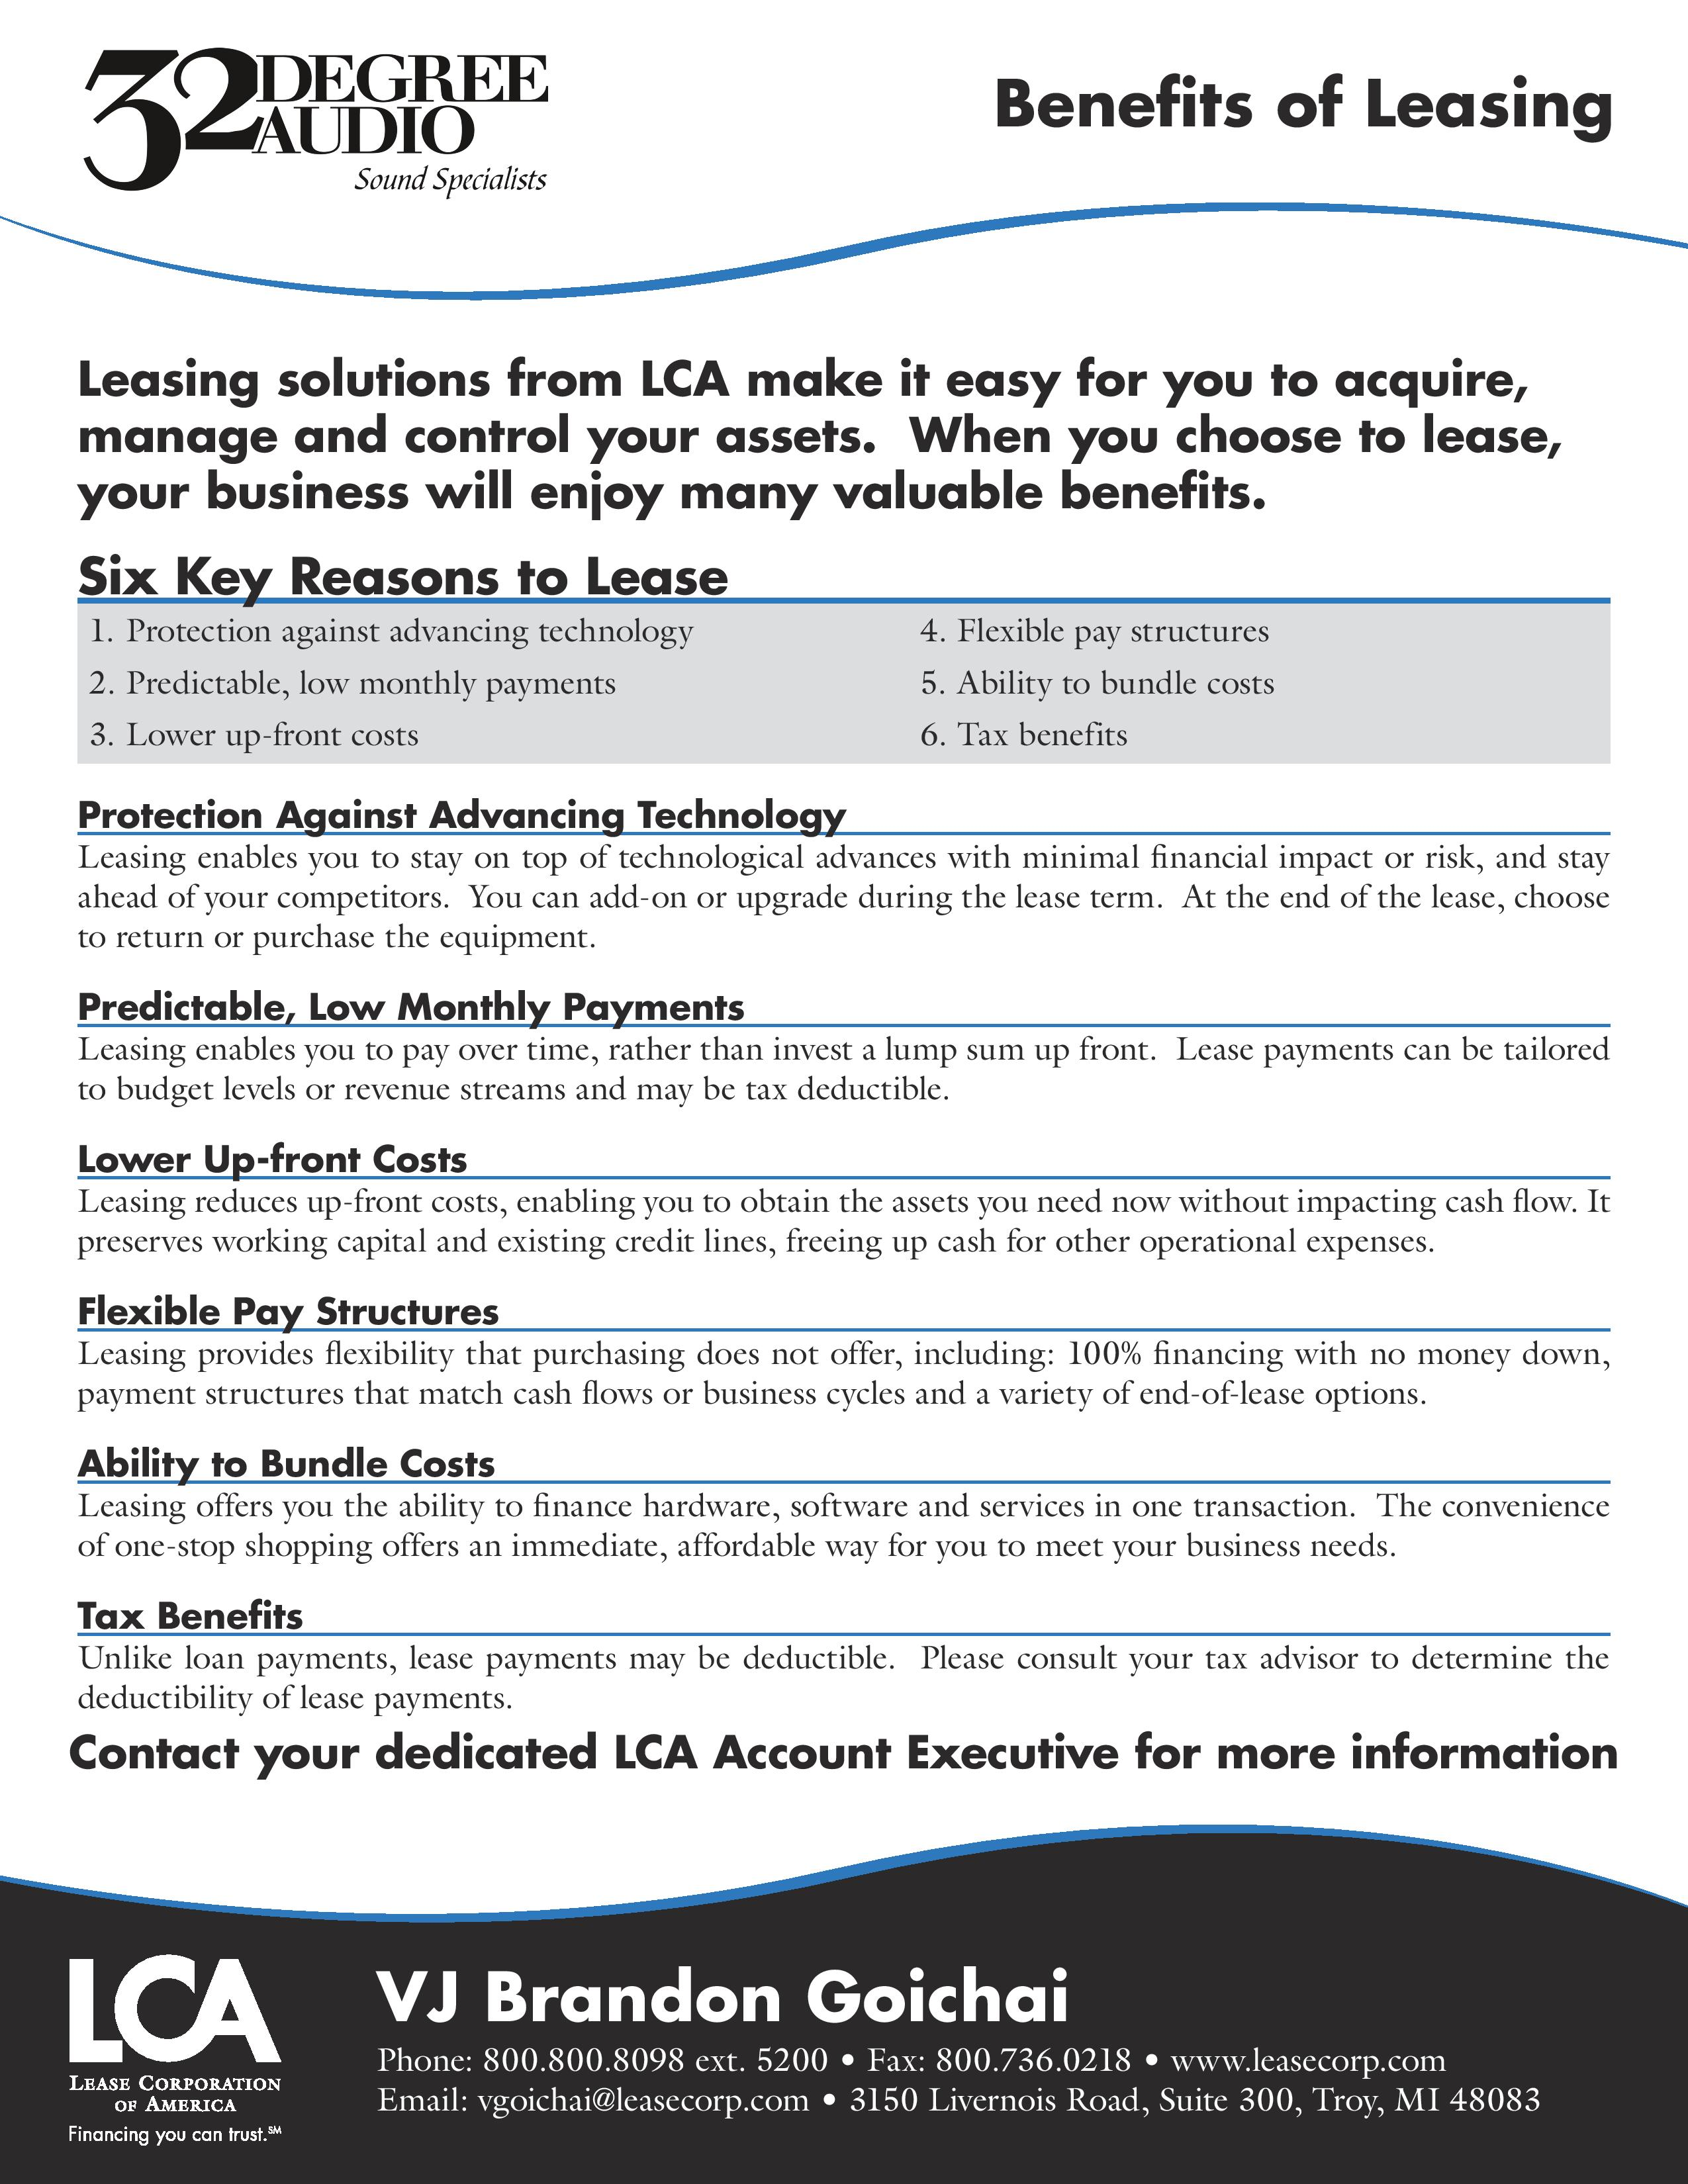 32 Degree Audio_Benefits of Leasing-page-001